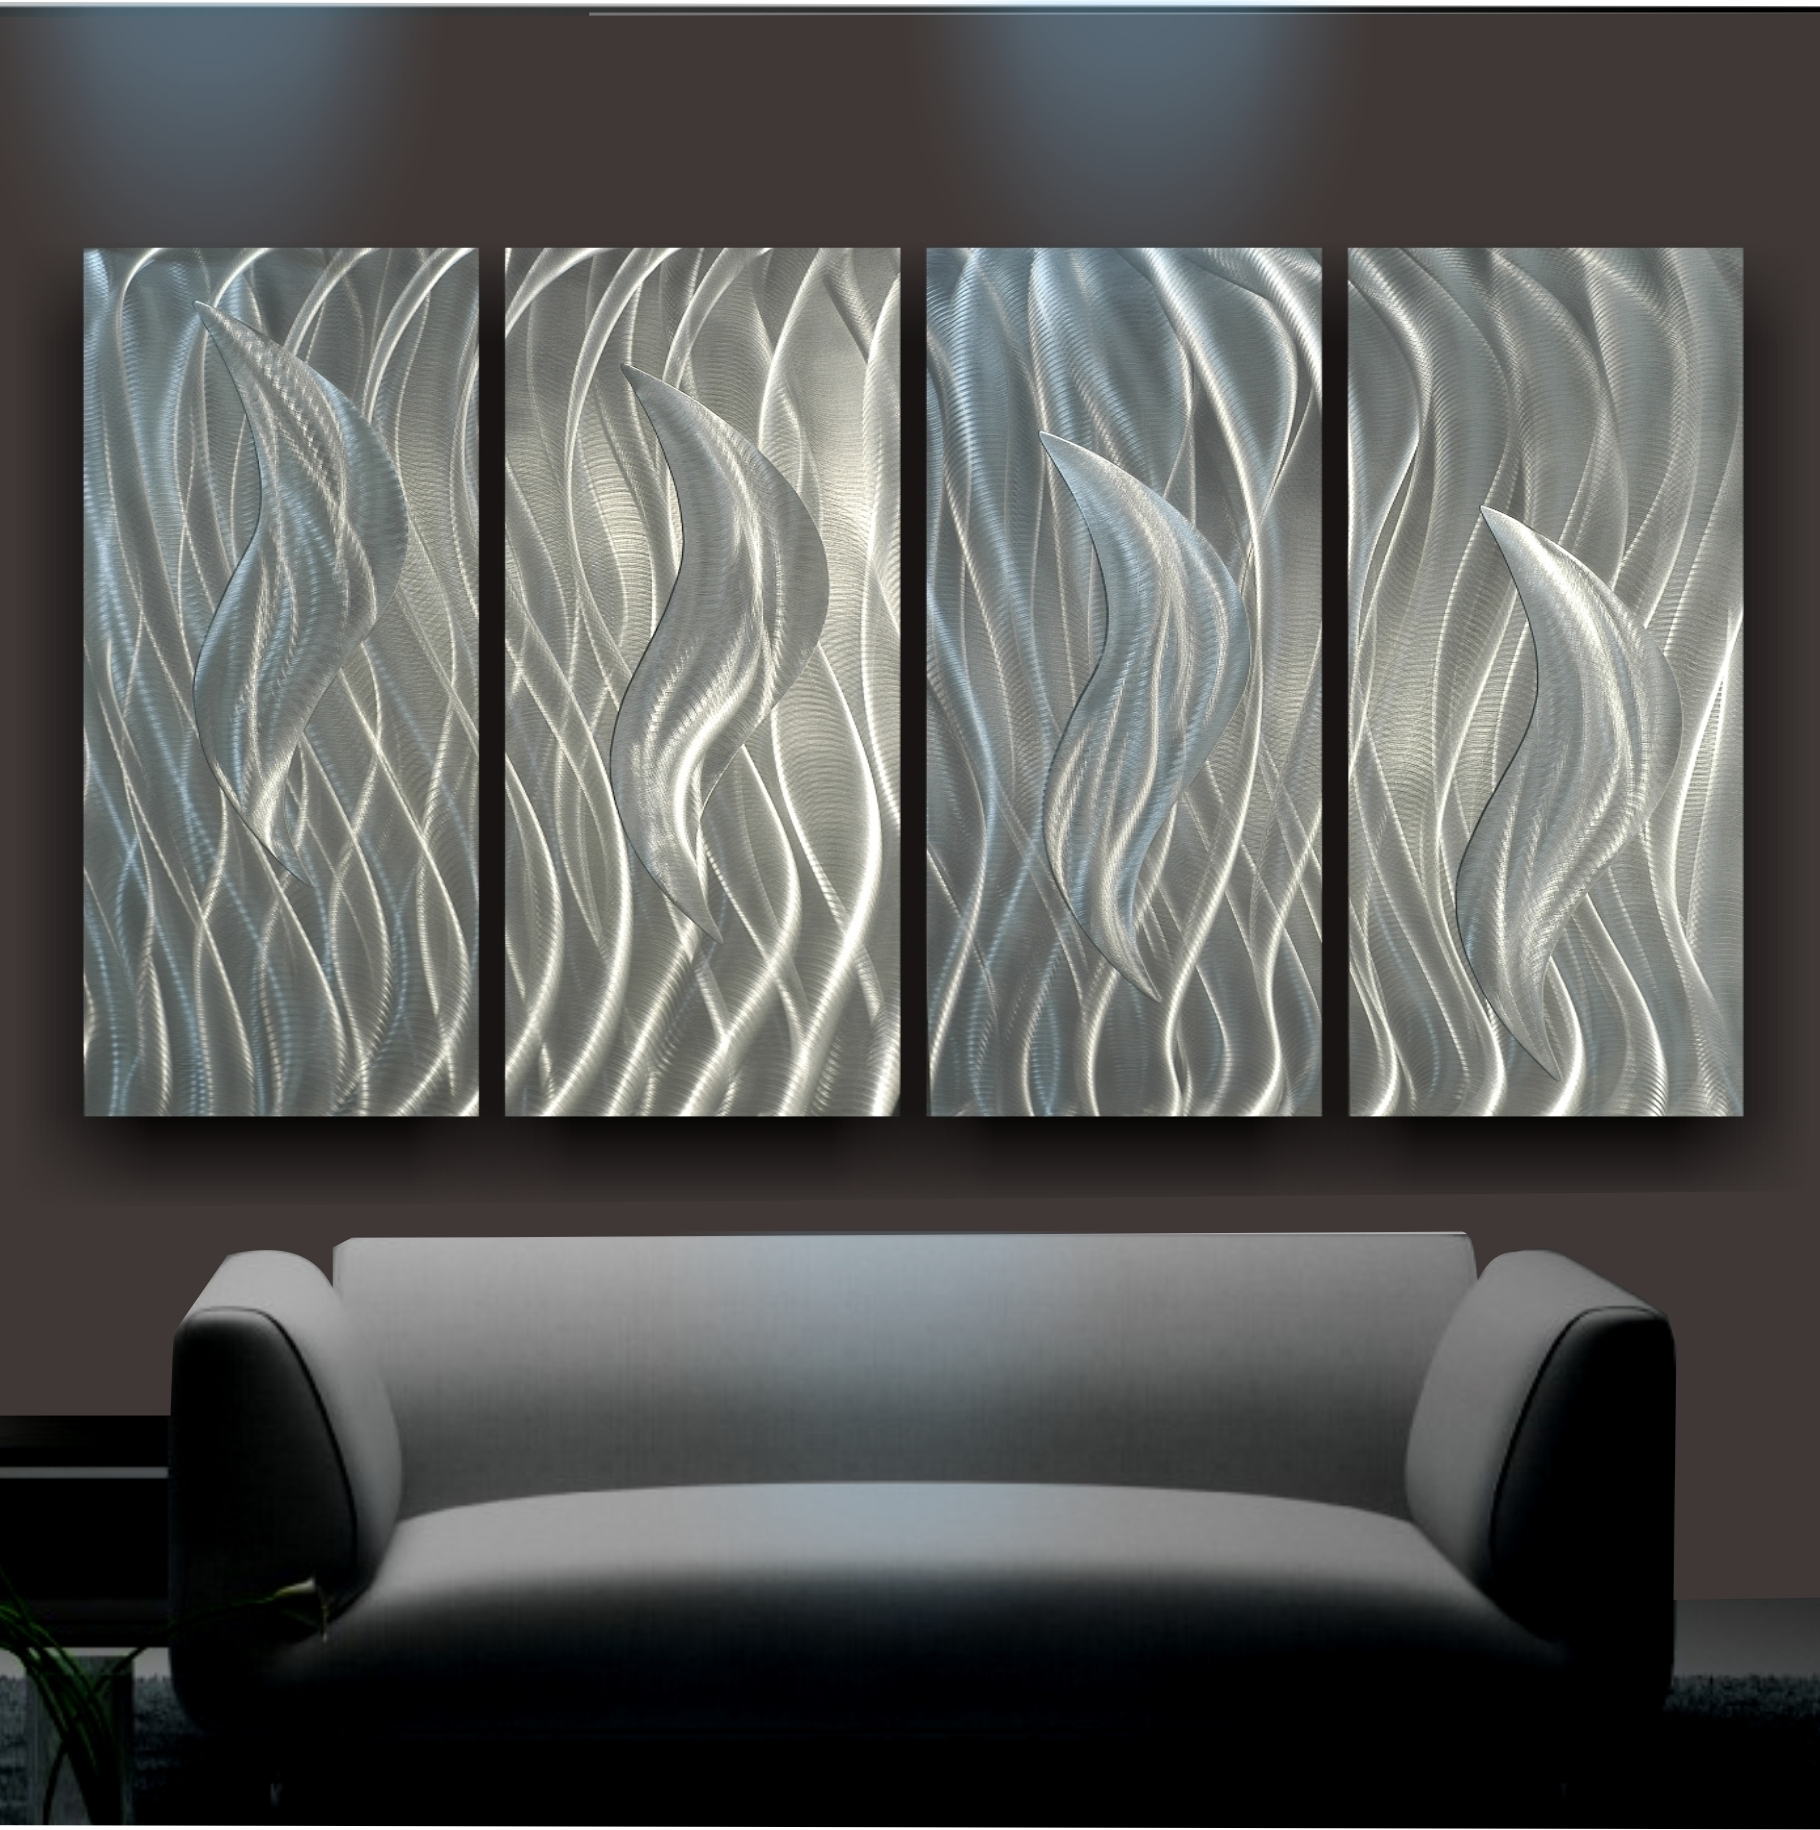 Steel Wall Surface Fine Art Is A Contemporary Sort Of Art Work For Most Popular Aluminum Abstract Wall Art (View 6 of 20)